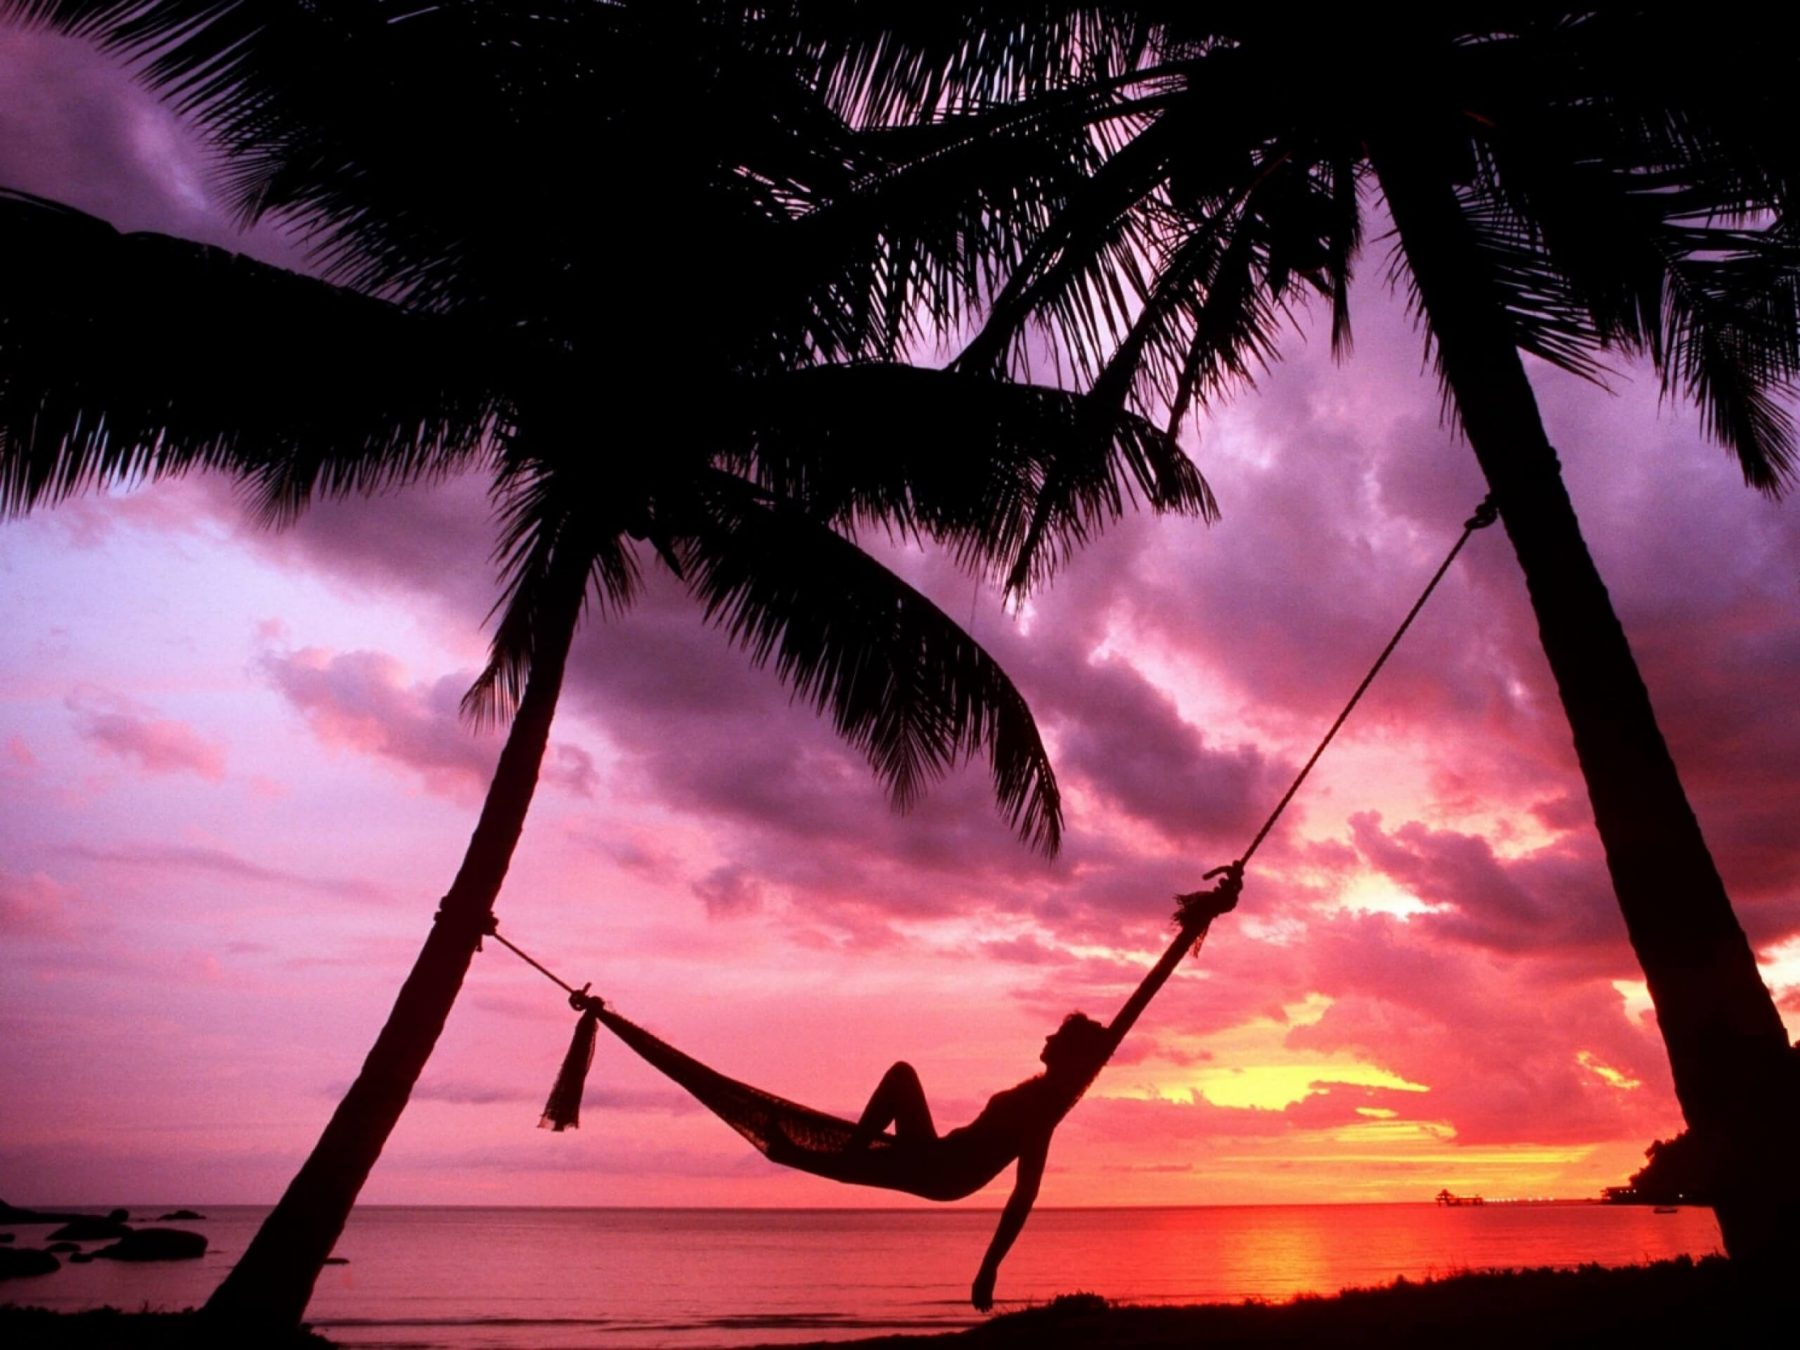 sunset beach chillout on a rope hammock